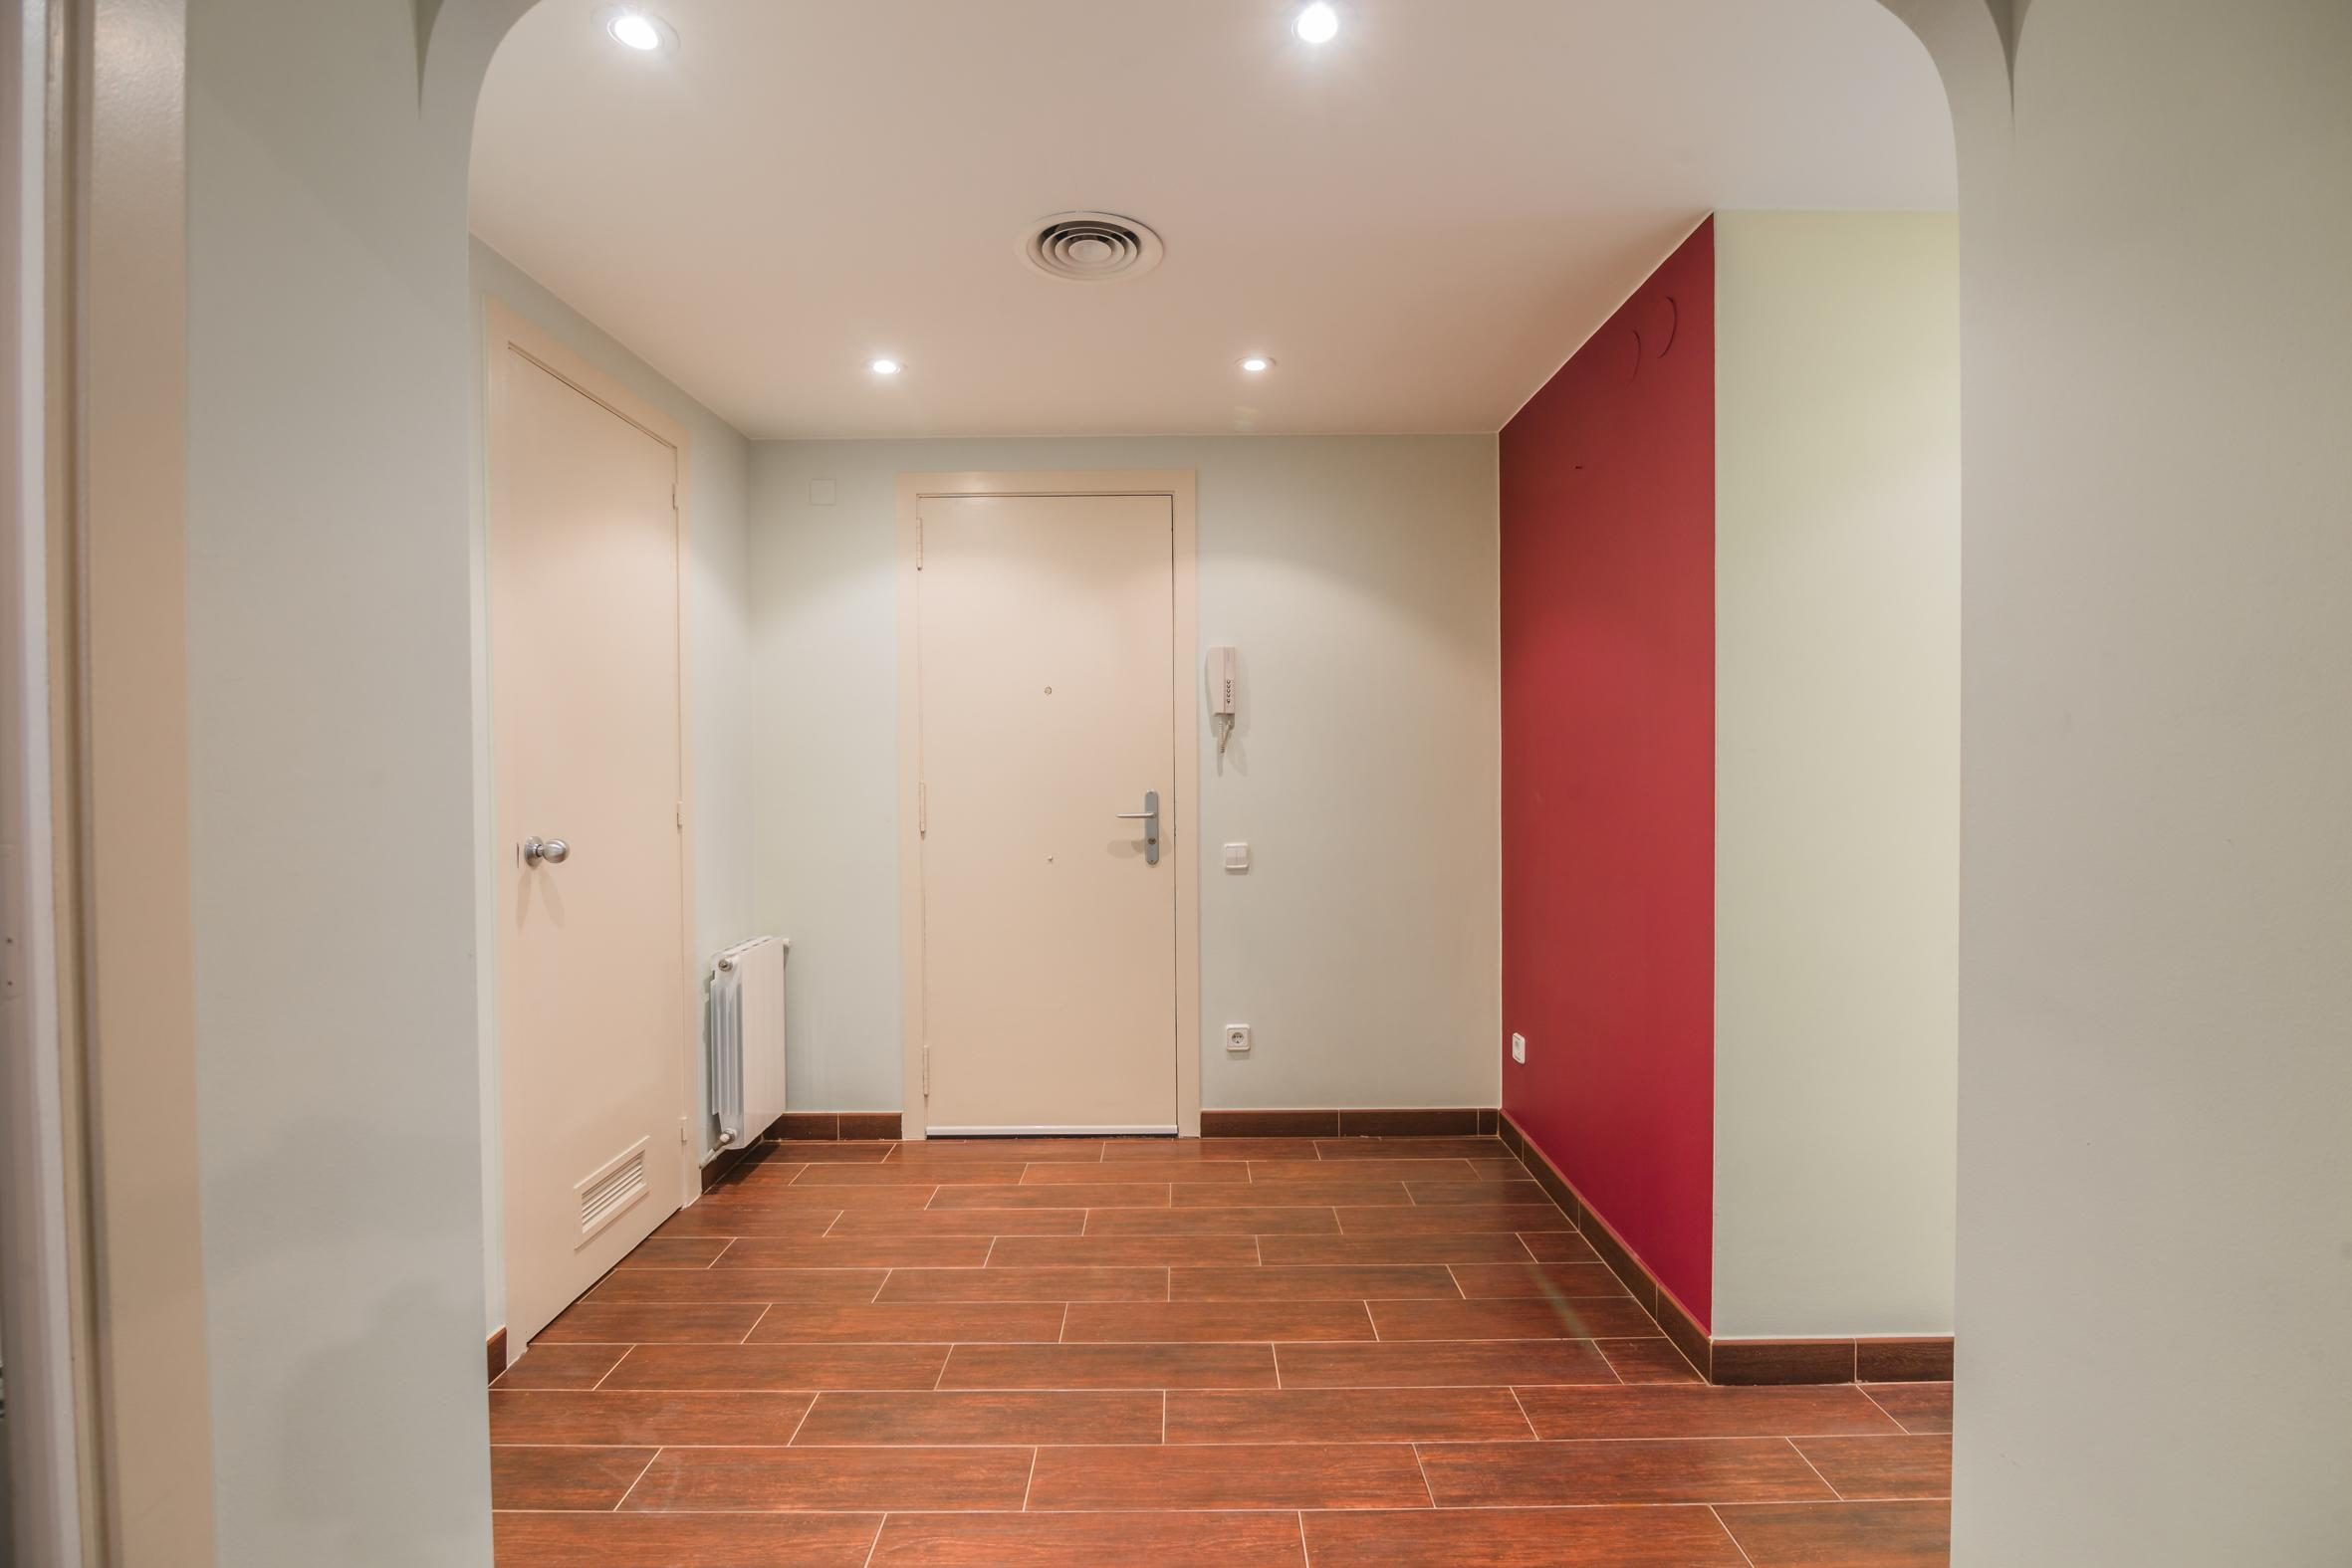 246902 Flat for sale in Les Corts, Pedralbes 10